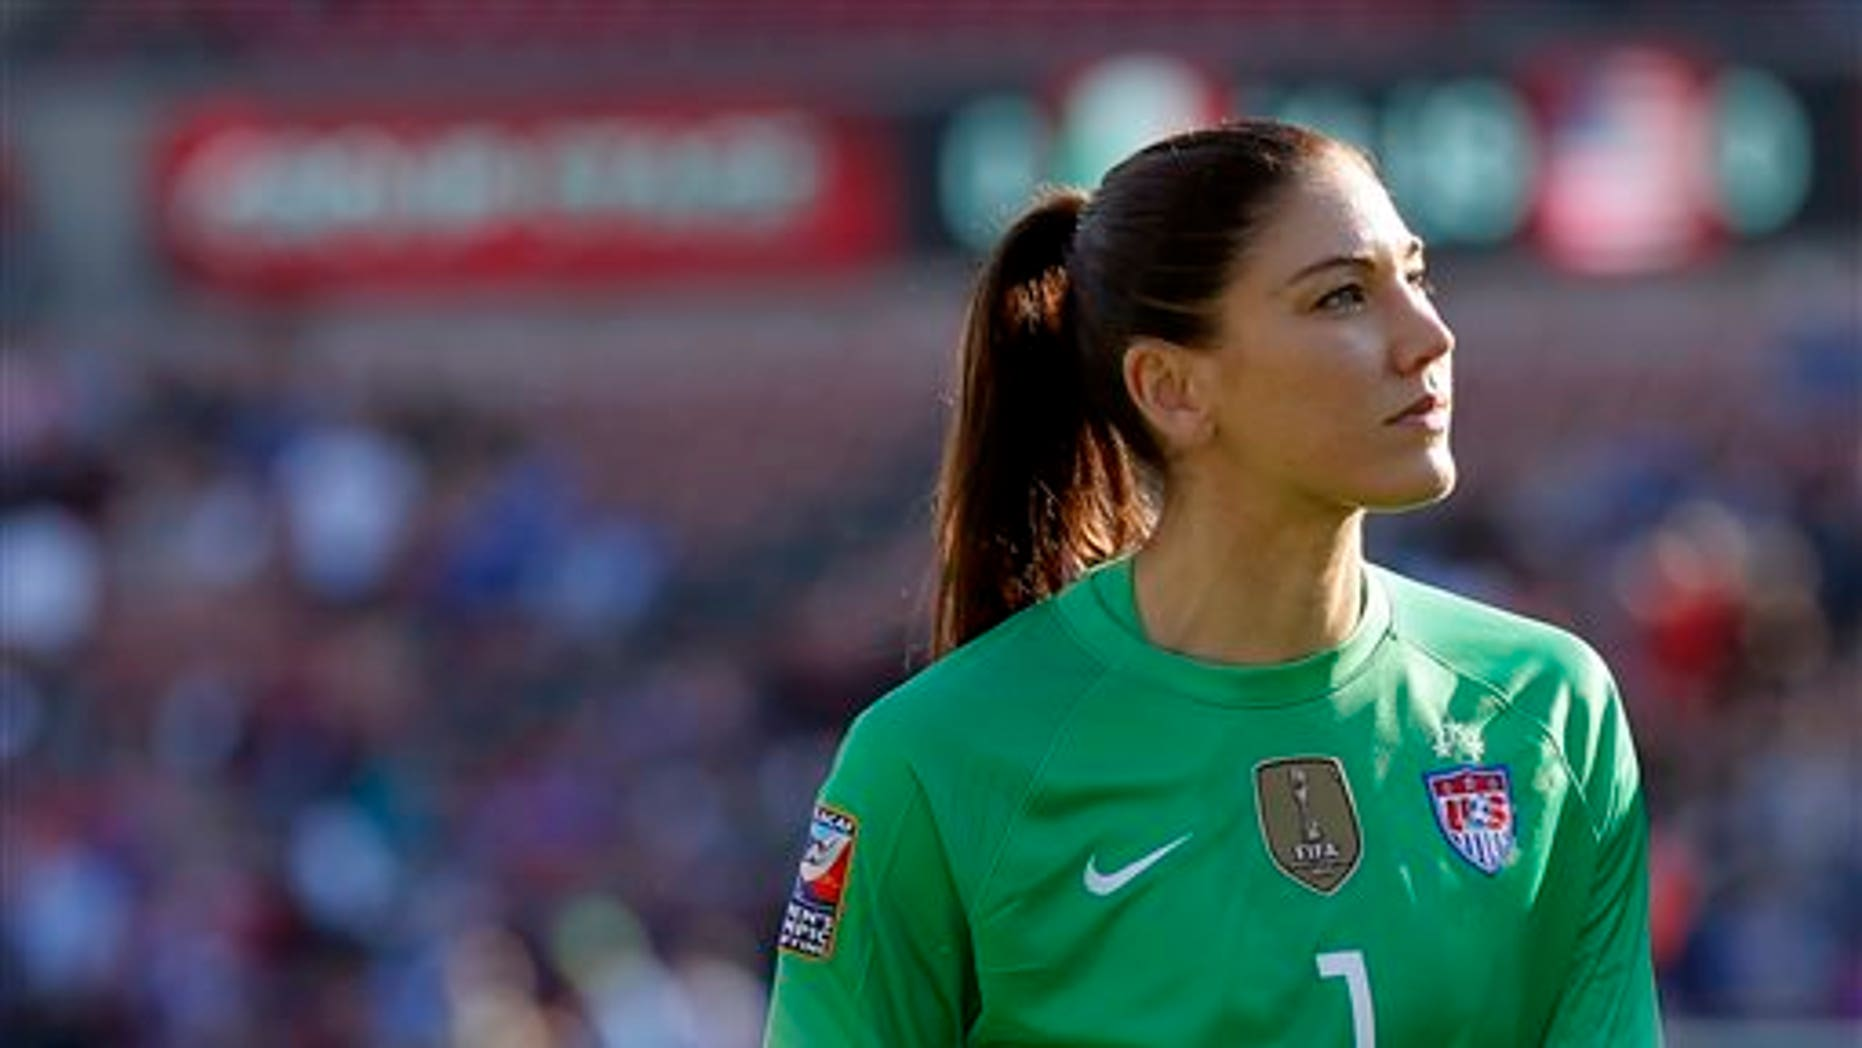 "American athlete Hope Solo, goalie for the U.S. women's national soccer team, says, regarding Zika virus fears, ""All I can do is speak for myself. If the Olympics were today, I would not go."" (AP Photo/Tony Gutierrez, File)"